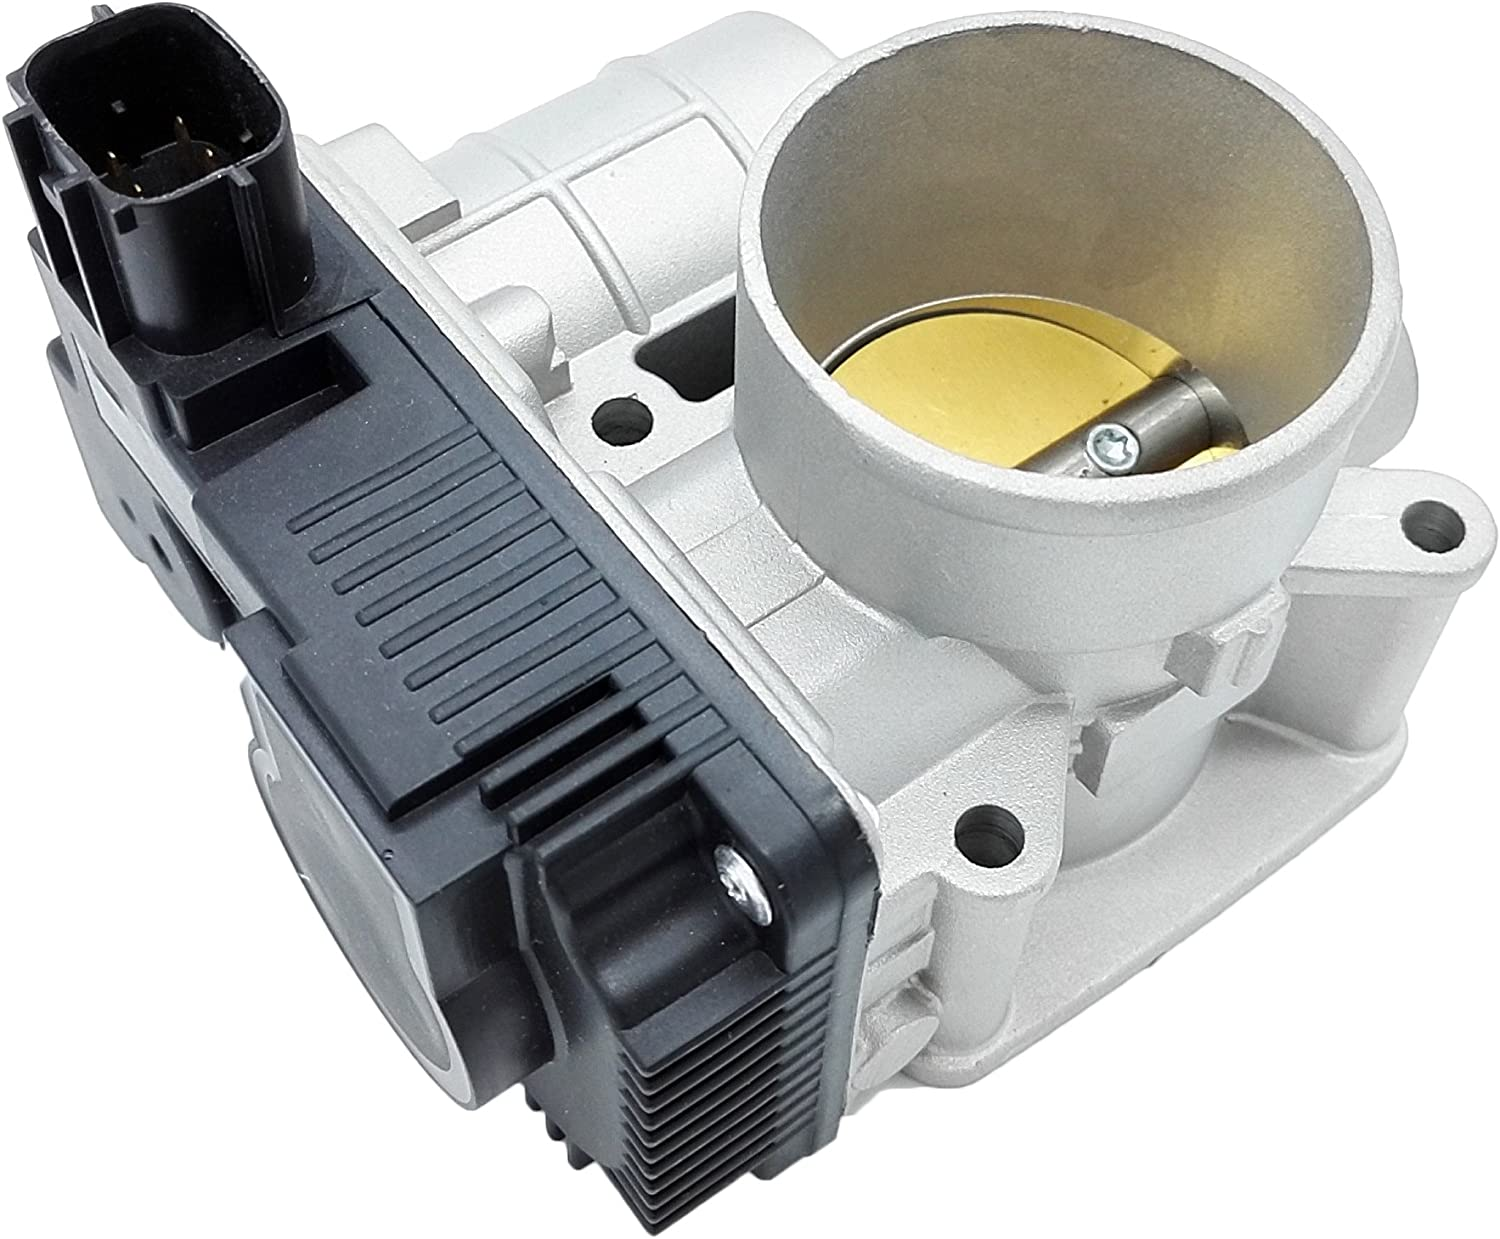 New Throttle Body Assembly For 2002-2006 Sentra 1.8L-L4 50mm 16119-AU003